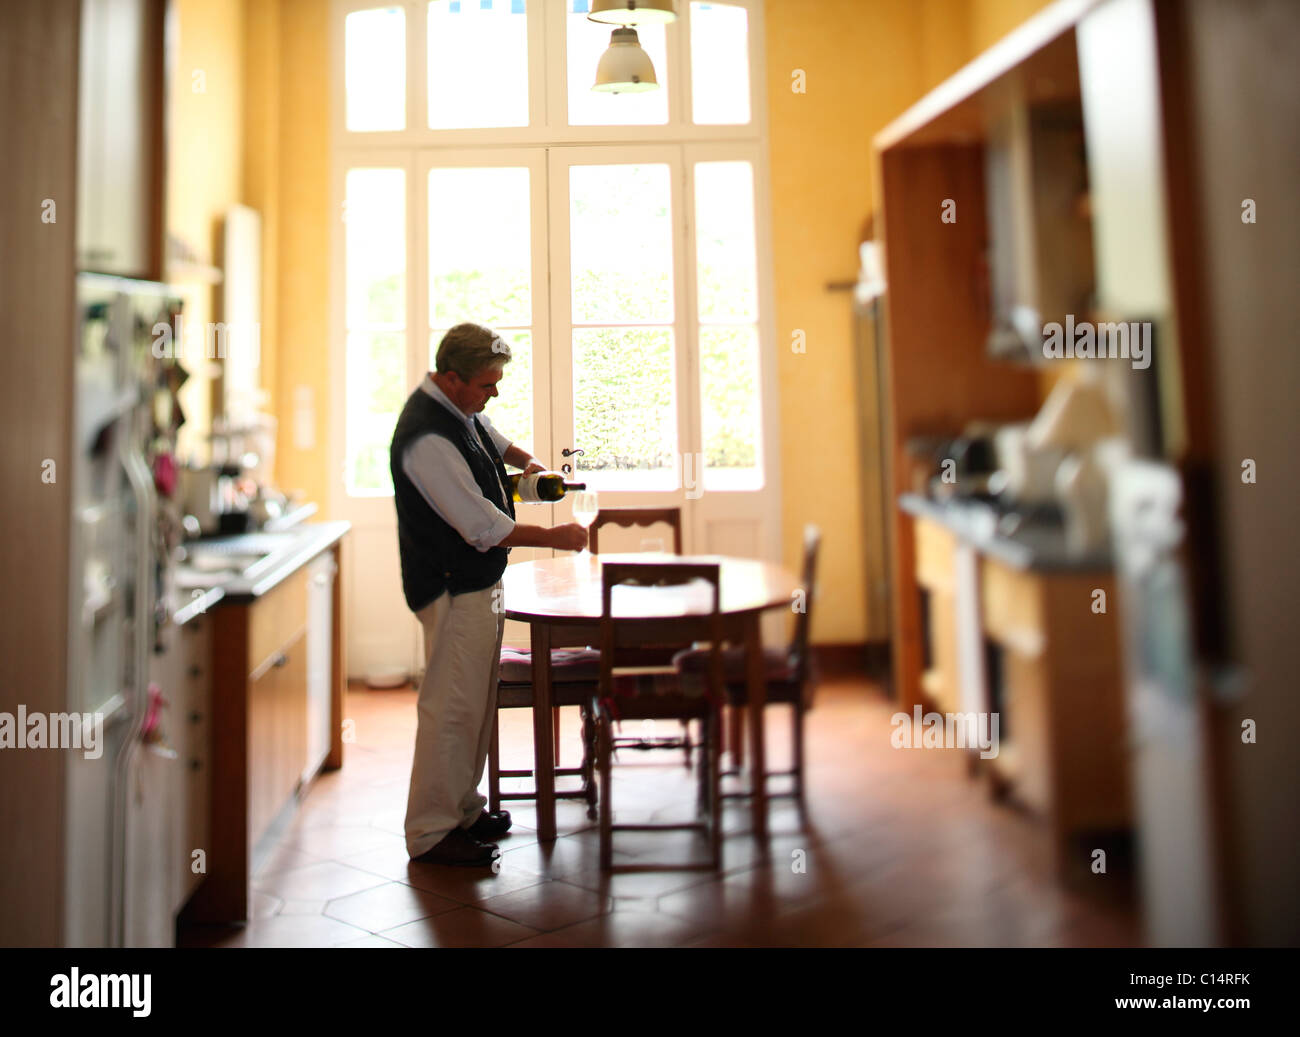 Man Pouring Wine - Stock Image